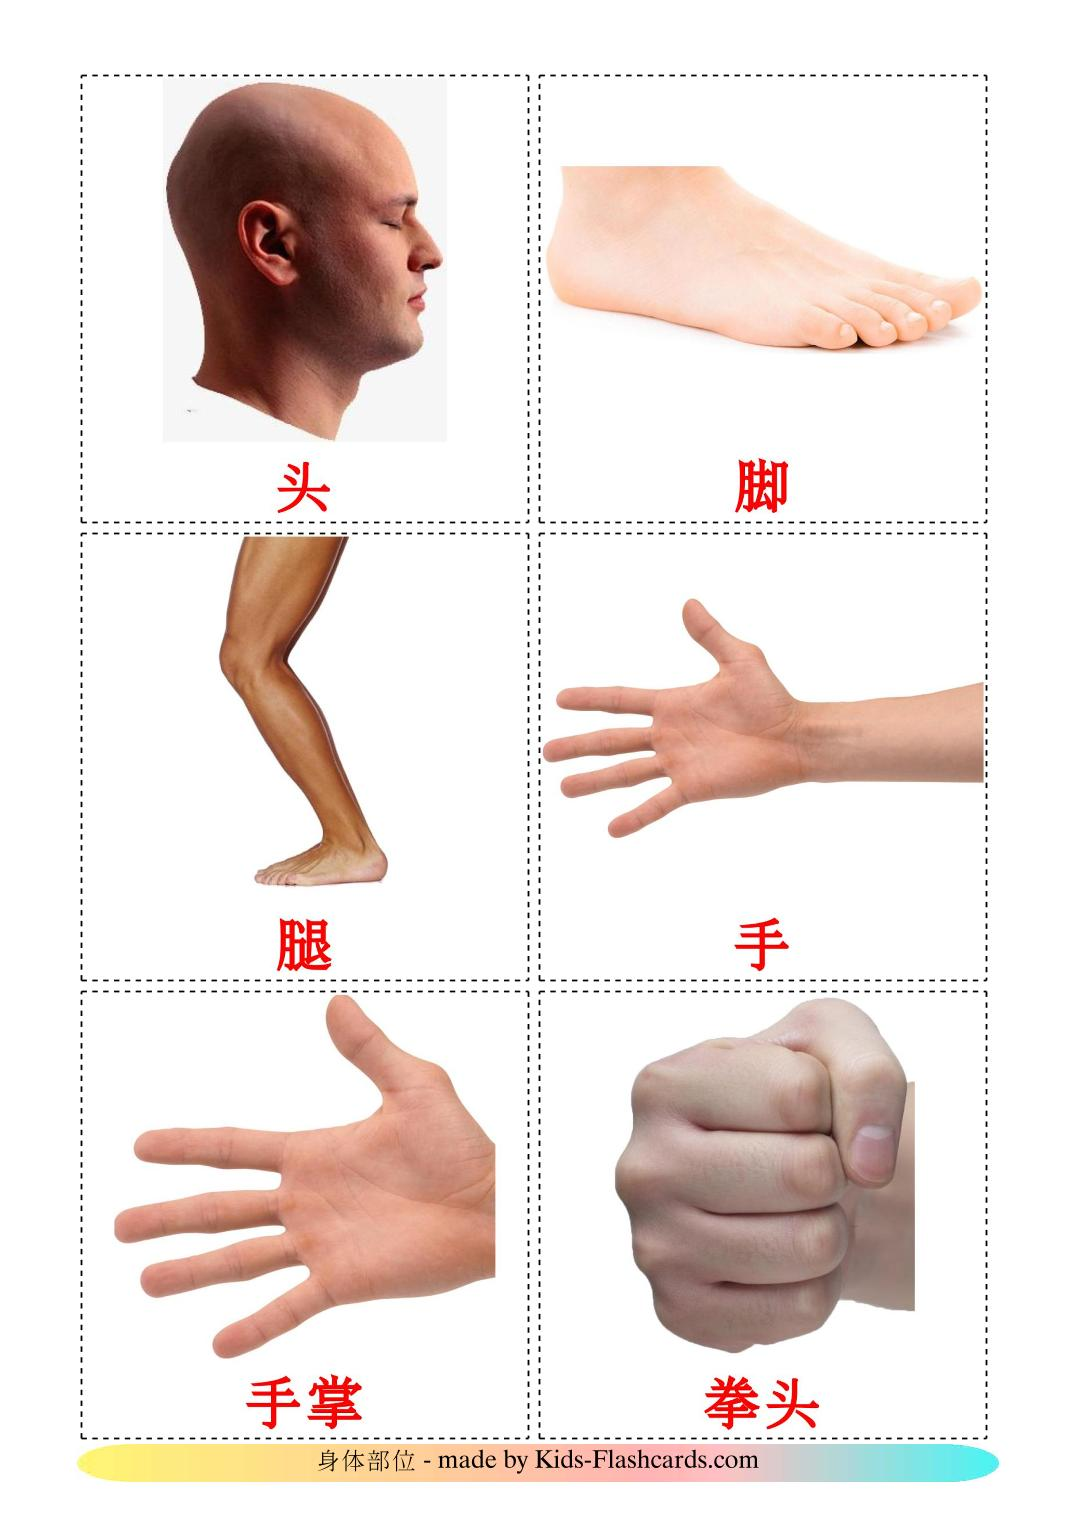 Body Parts - 26 Free Printable chinese(Simplified) Flashcards